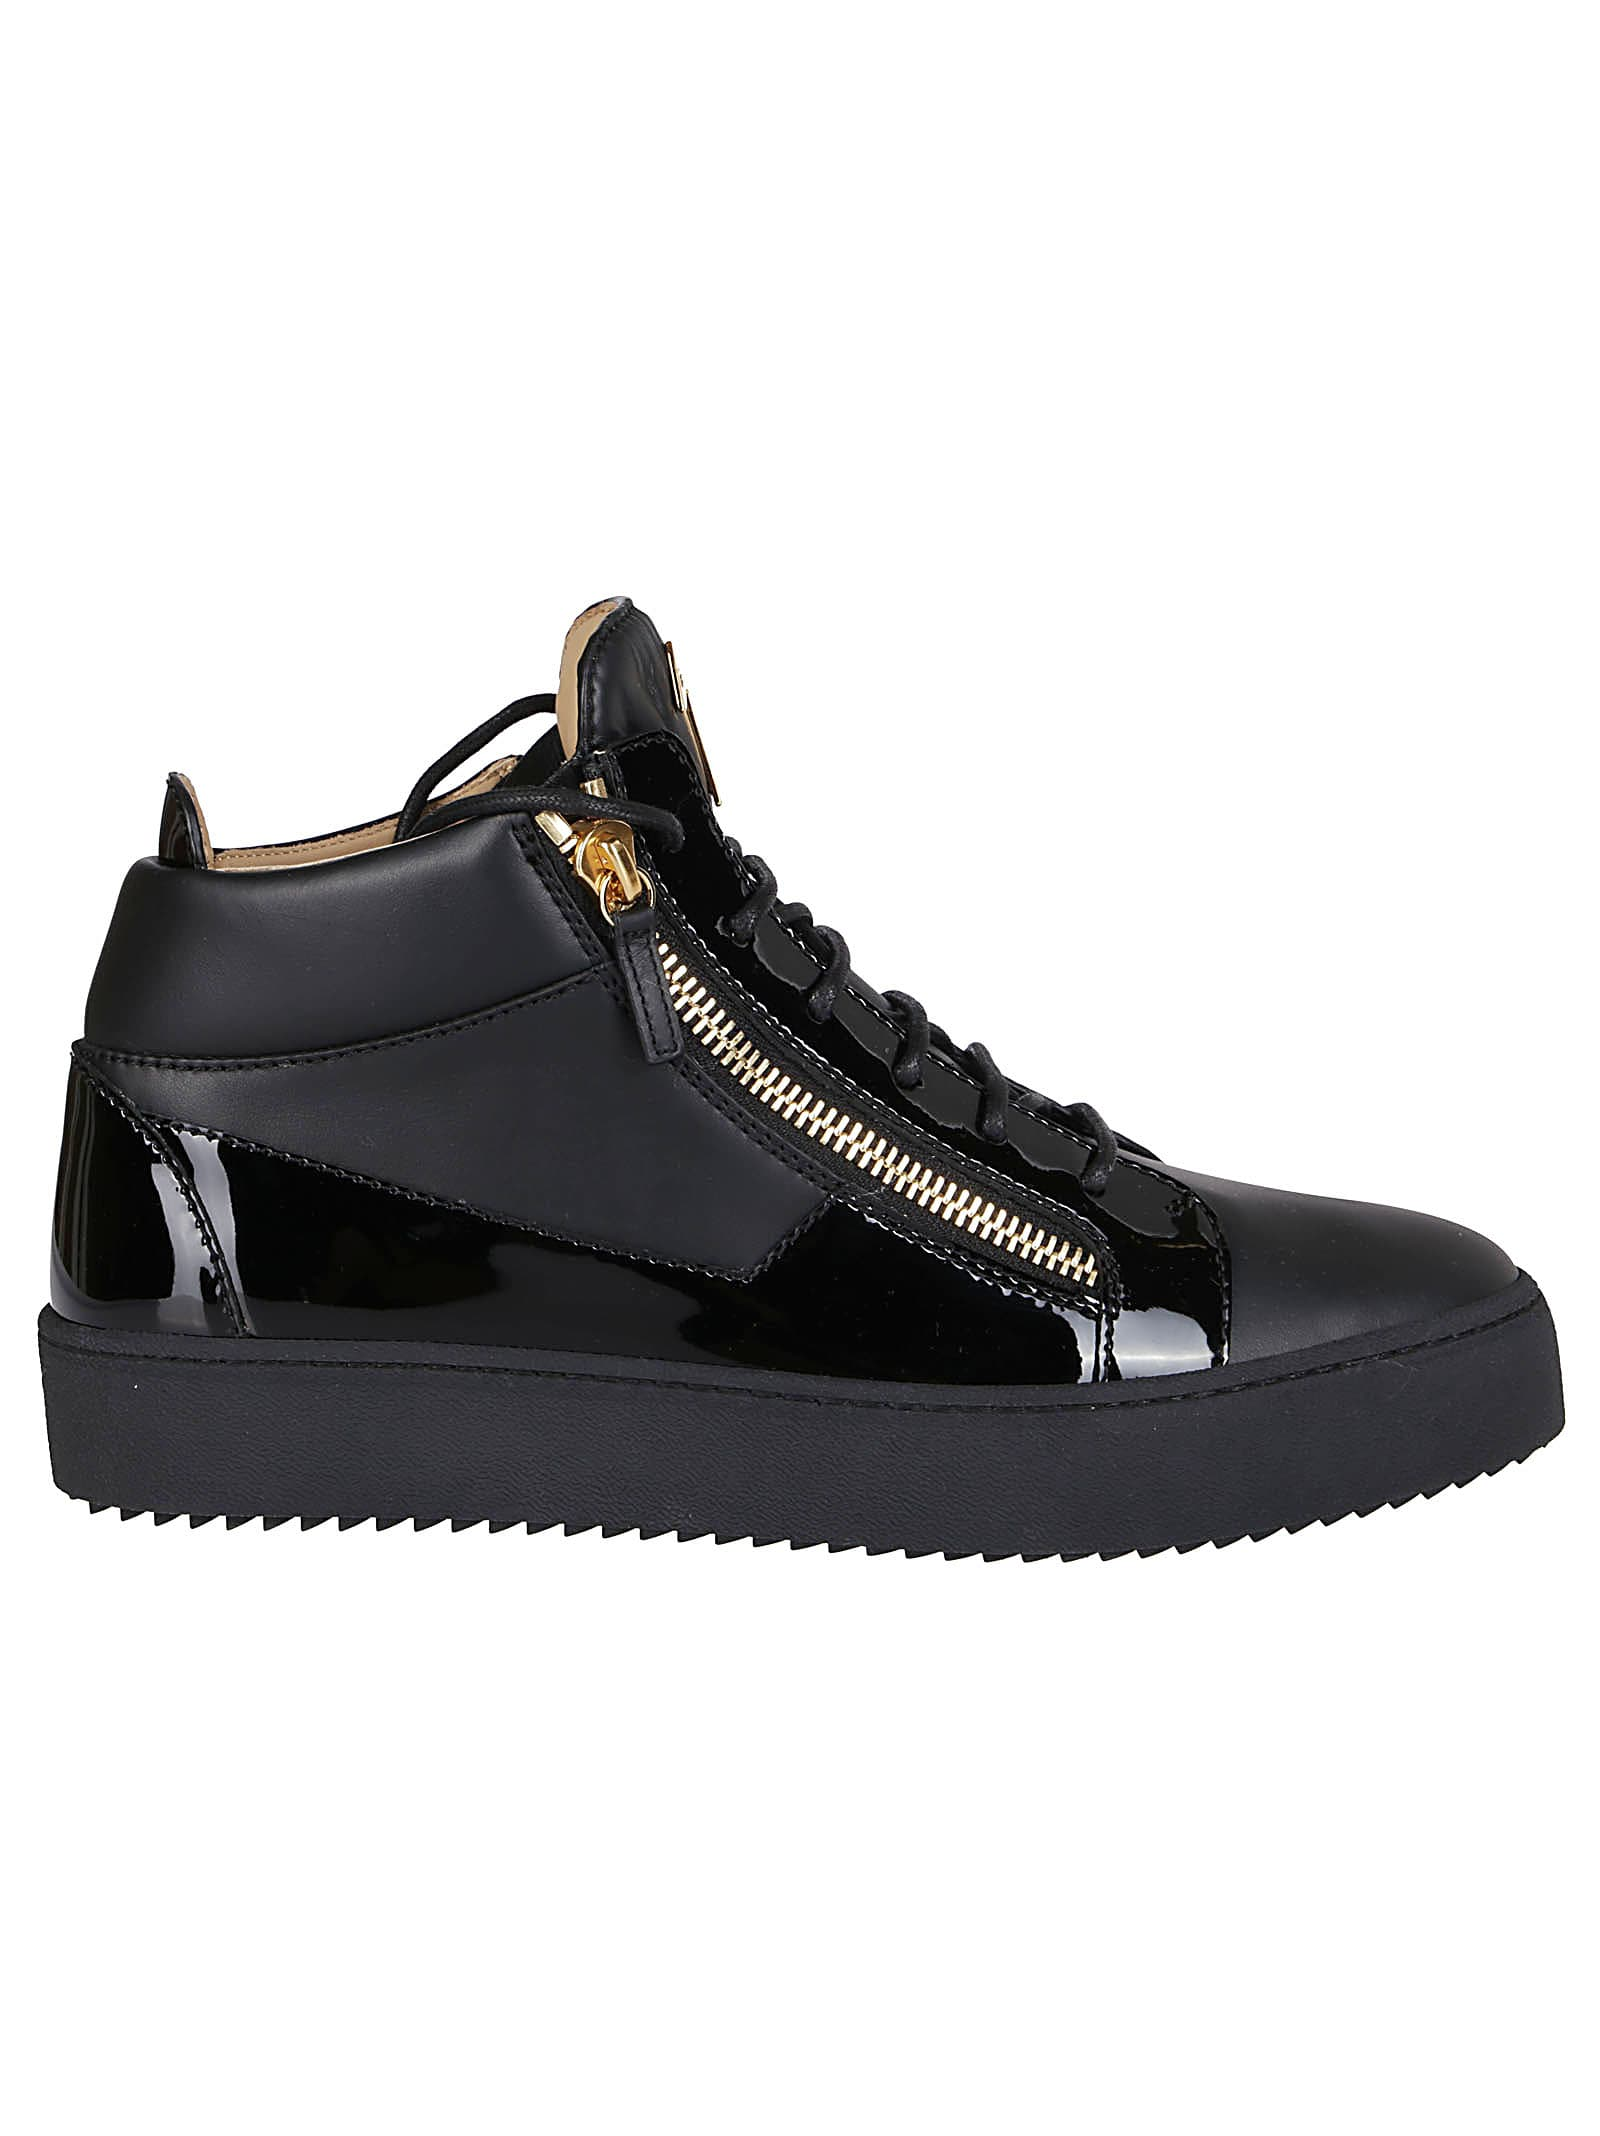 GIUSEPPE ZANOTTI BLACK LEATHER SNEAKERS